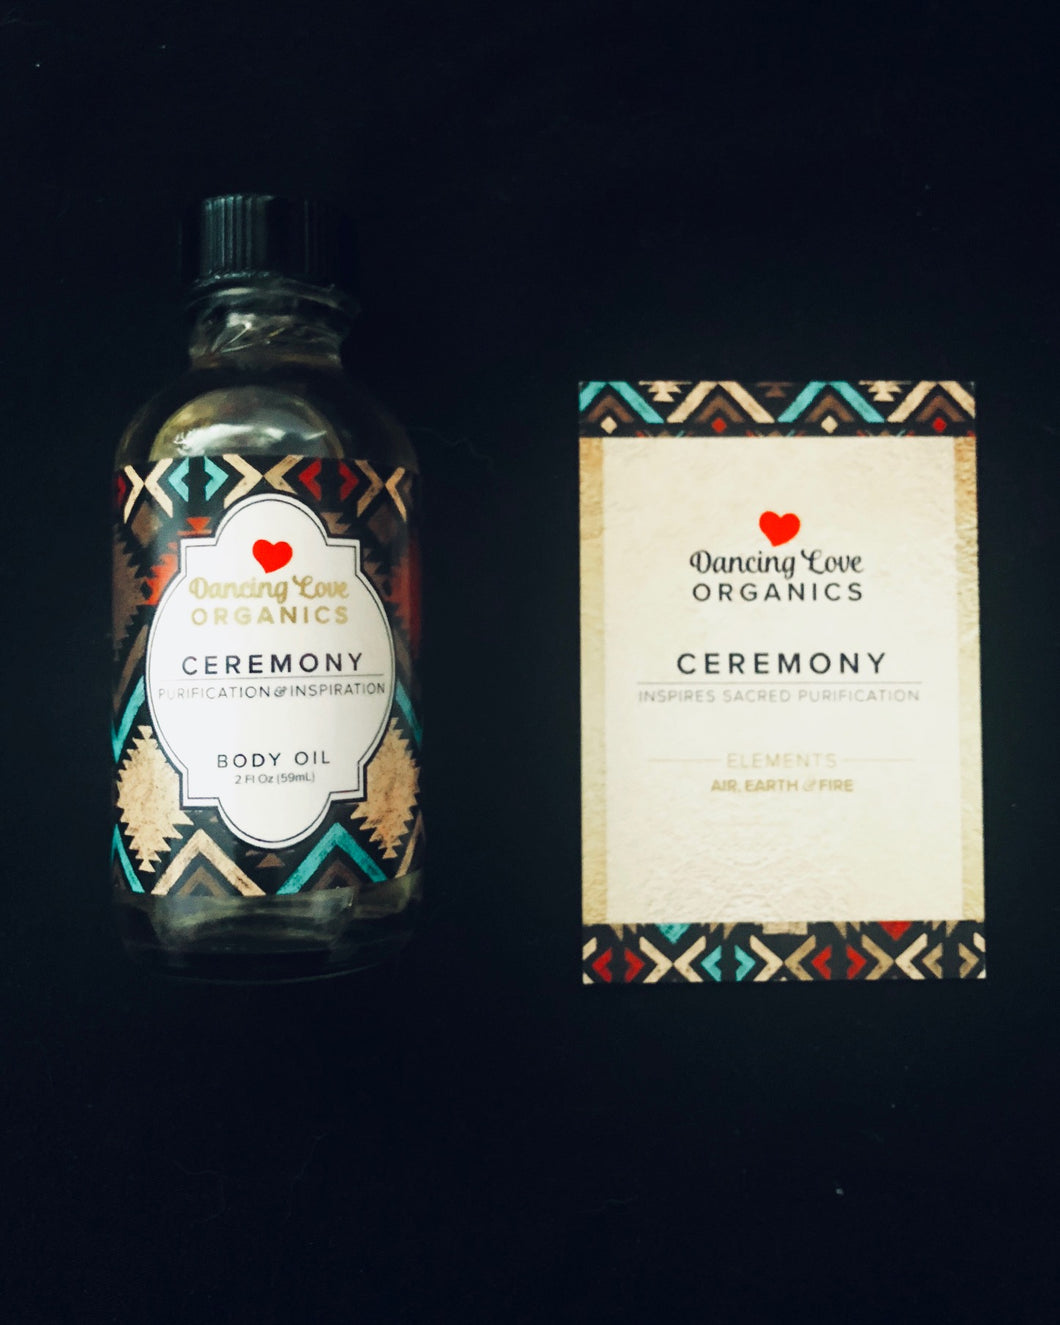 Ceremony Body Oil - dancing love organics